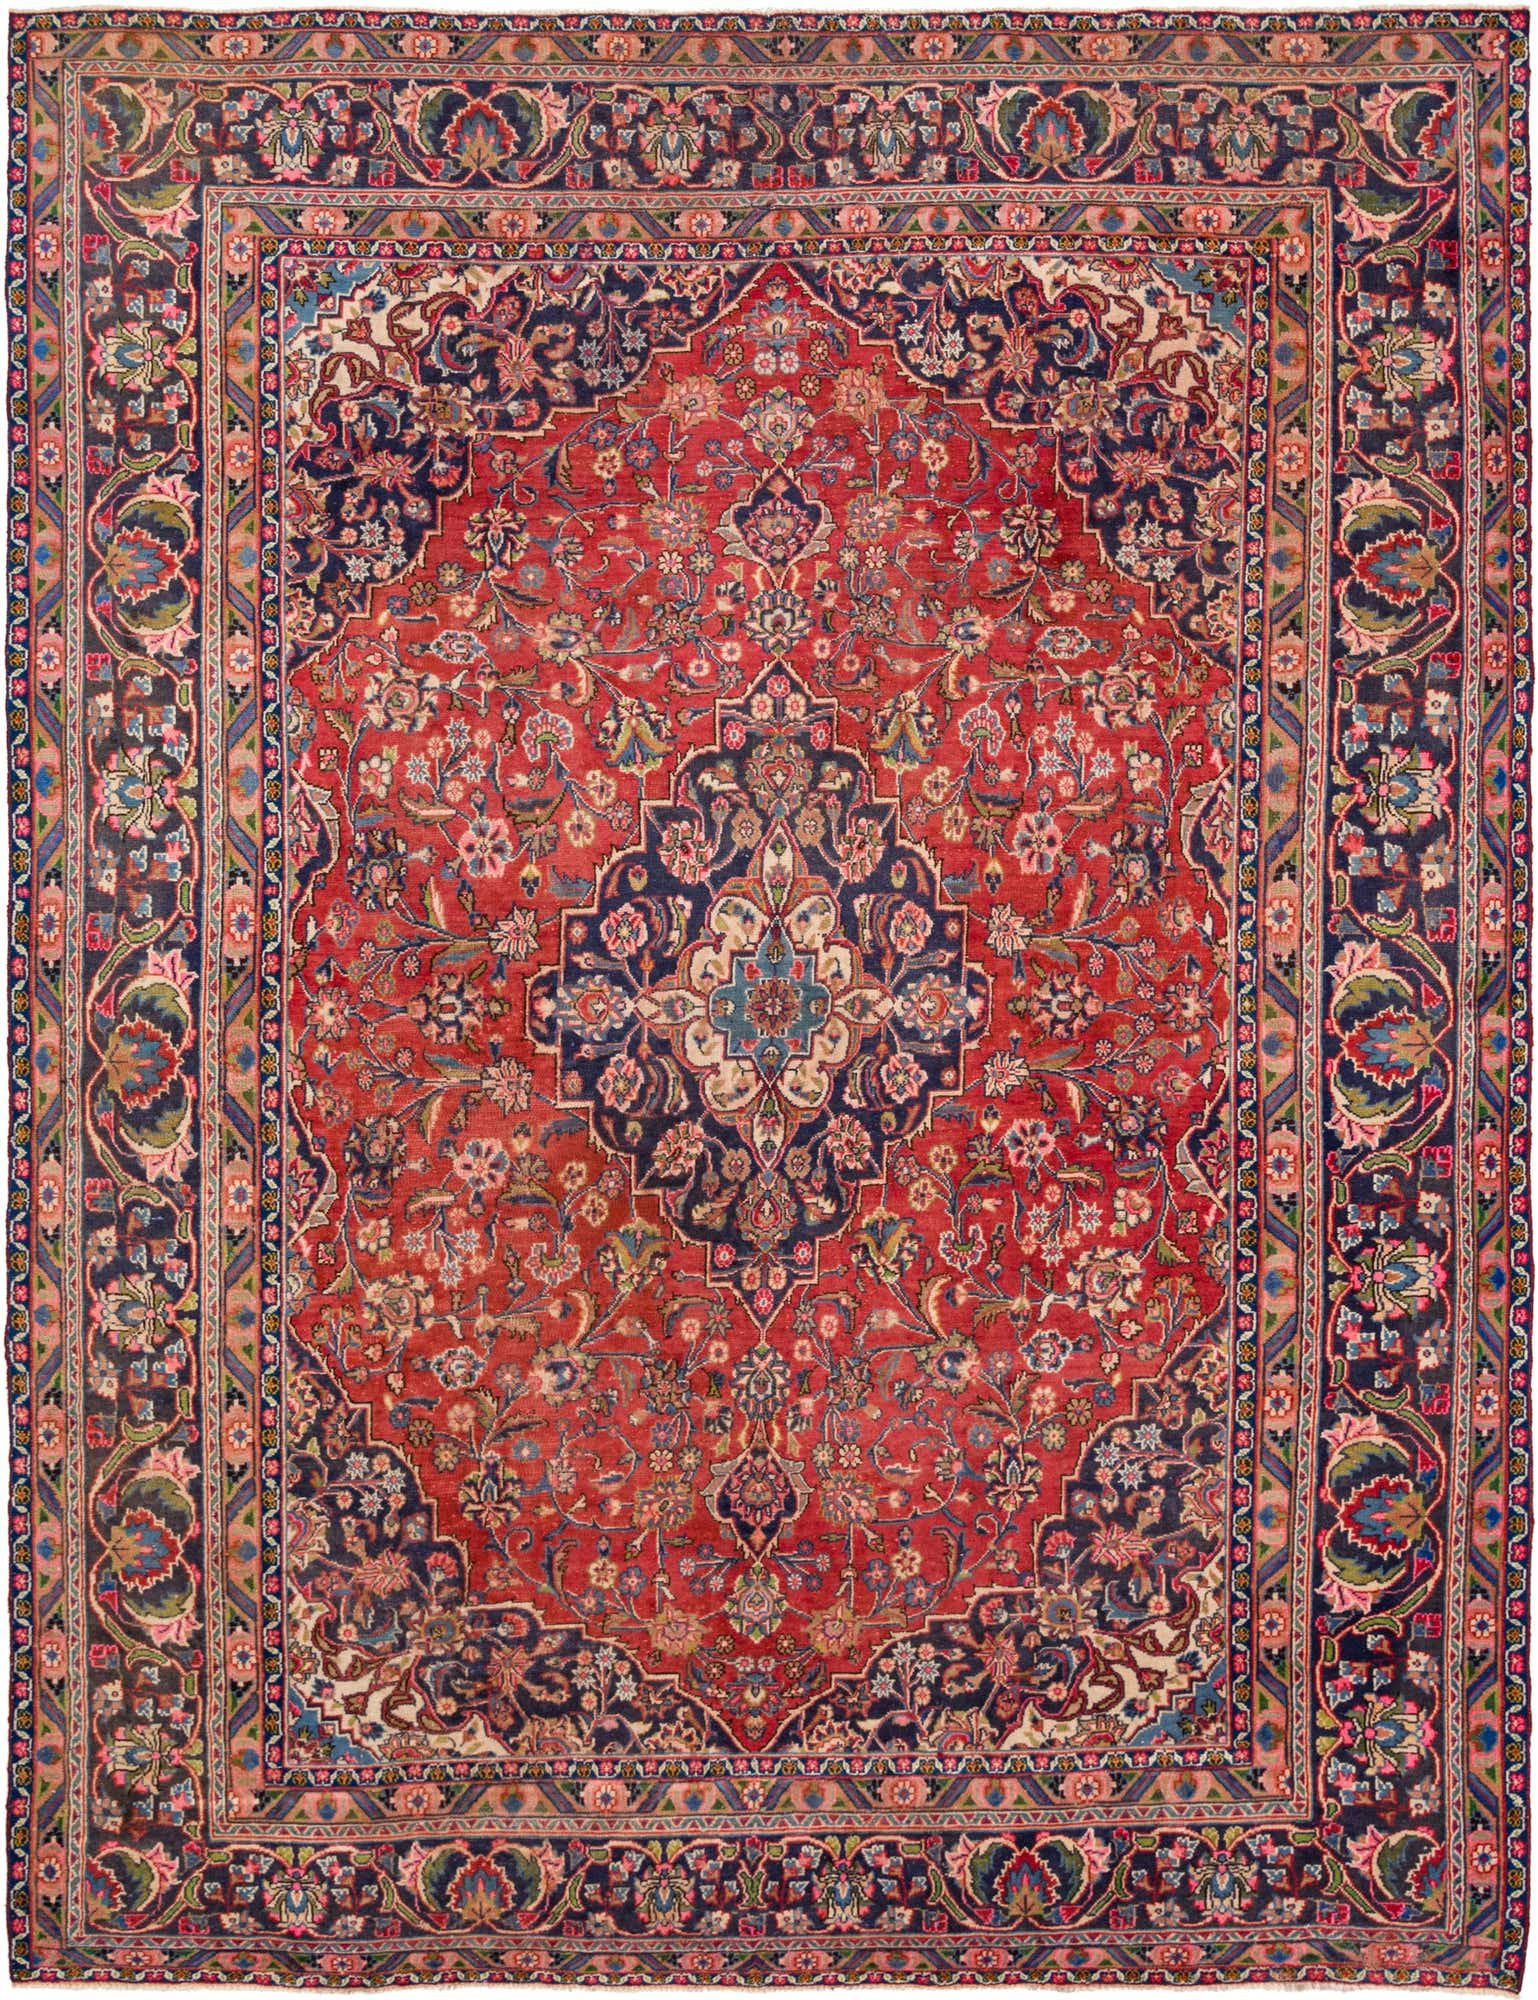 Red 9 5 X 12 2 Mahal Persian Rug Handknotted Com